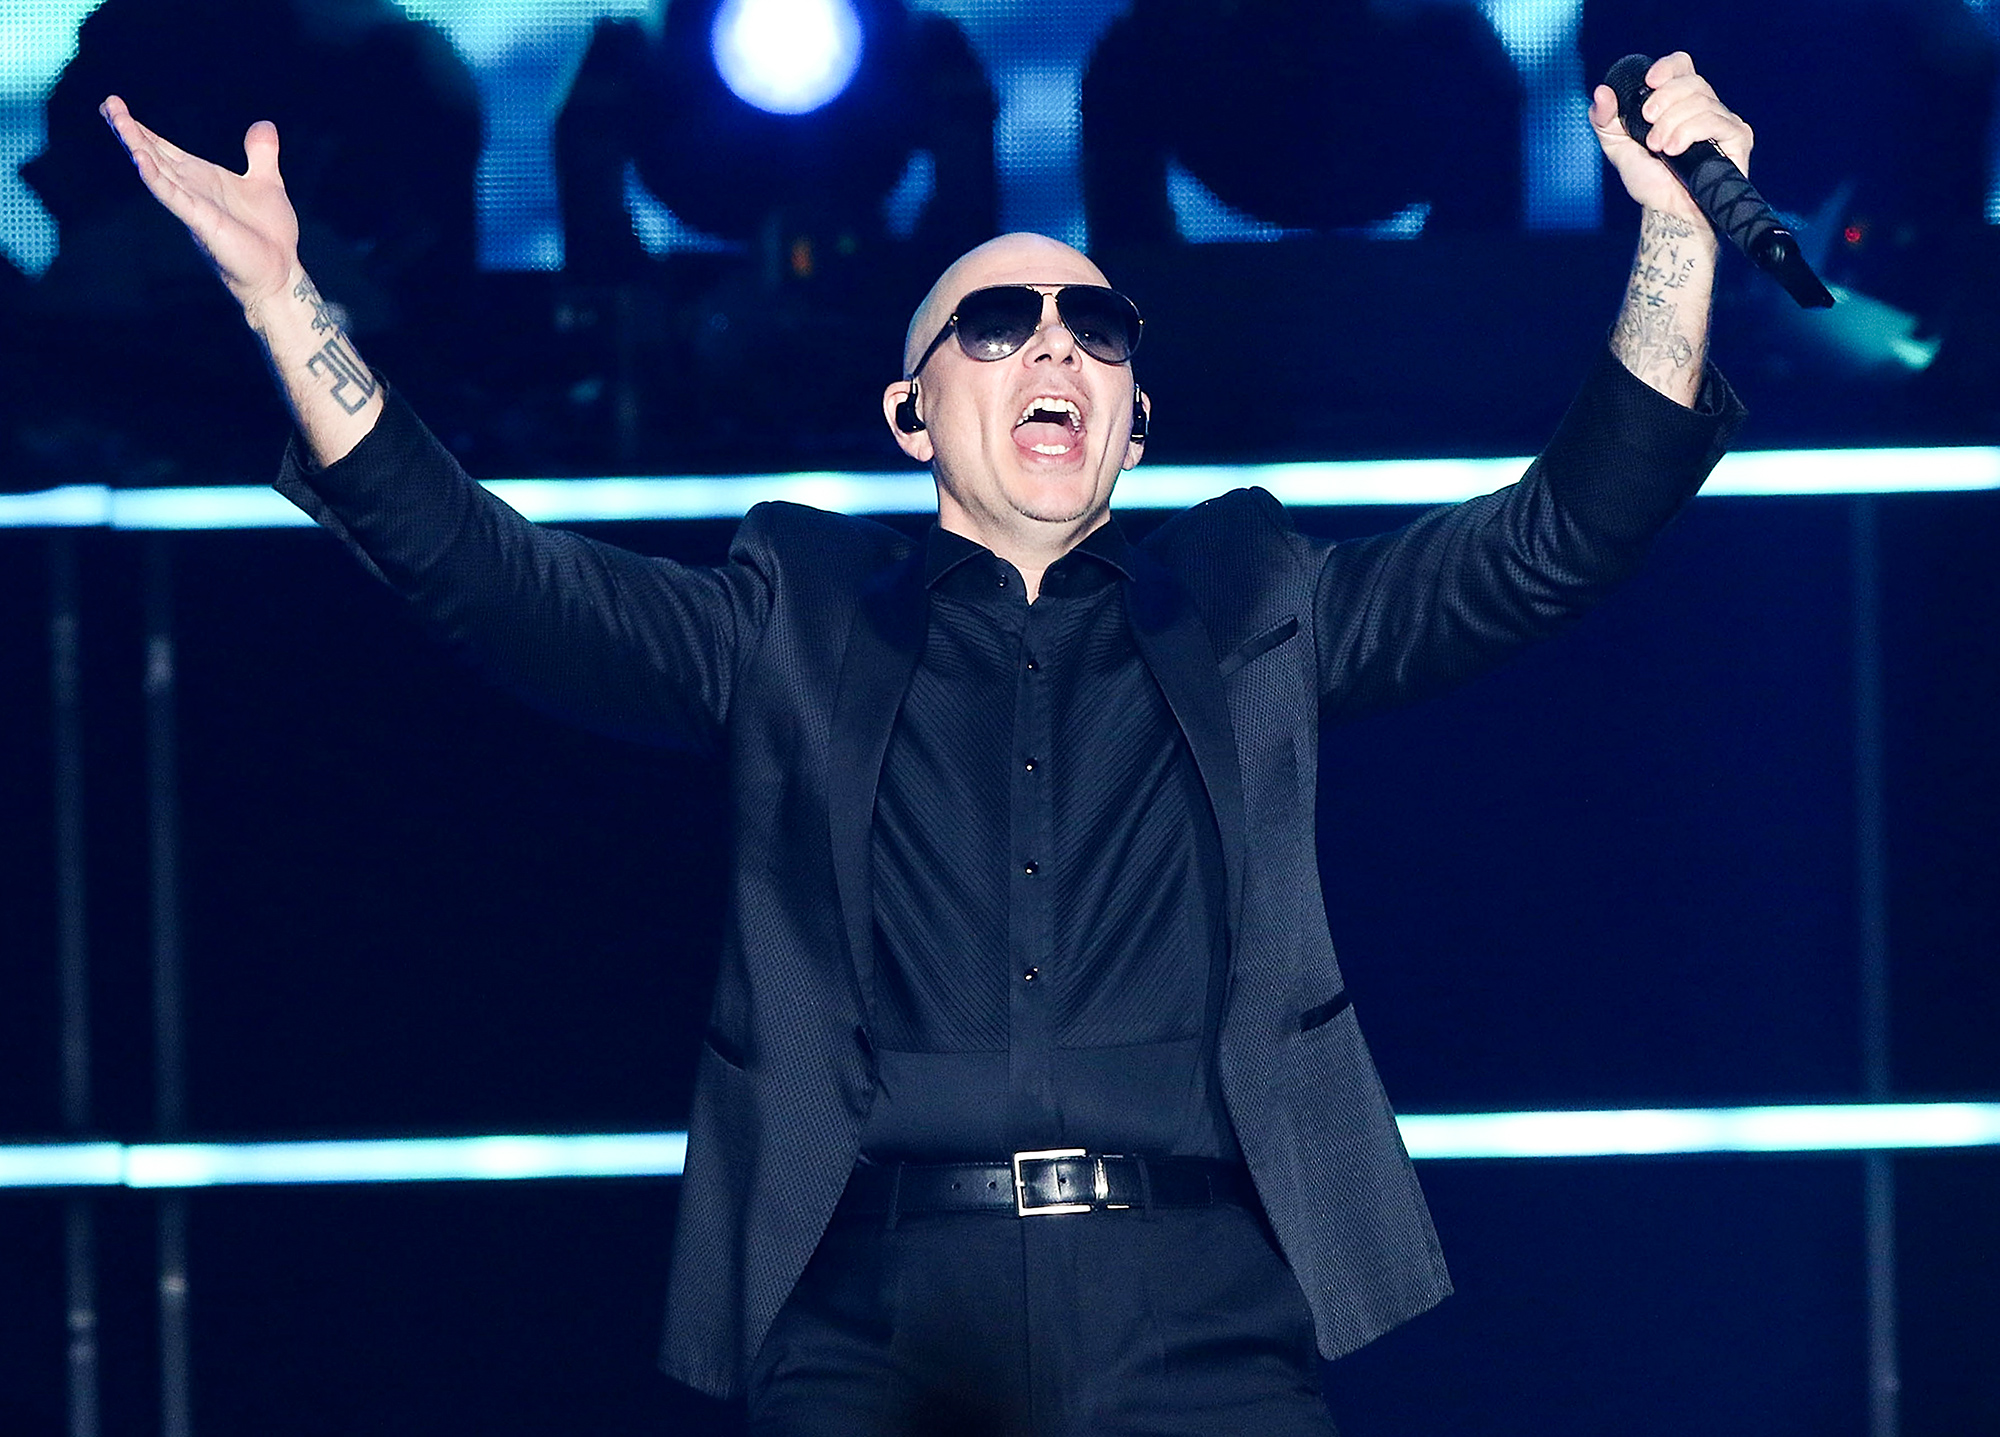 Enrique Iglesias And Pitbull Perform At The Forum